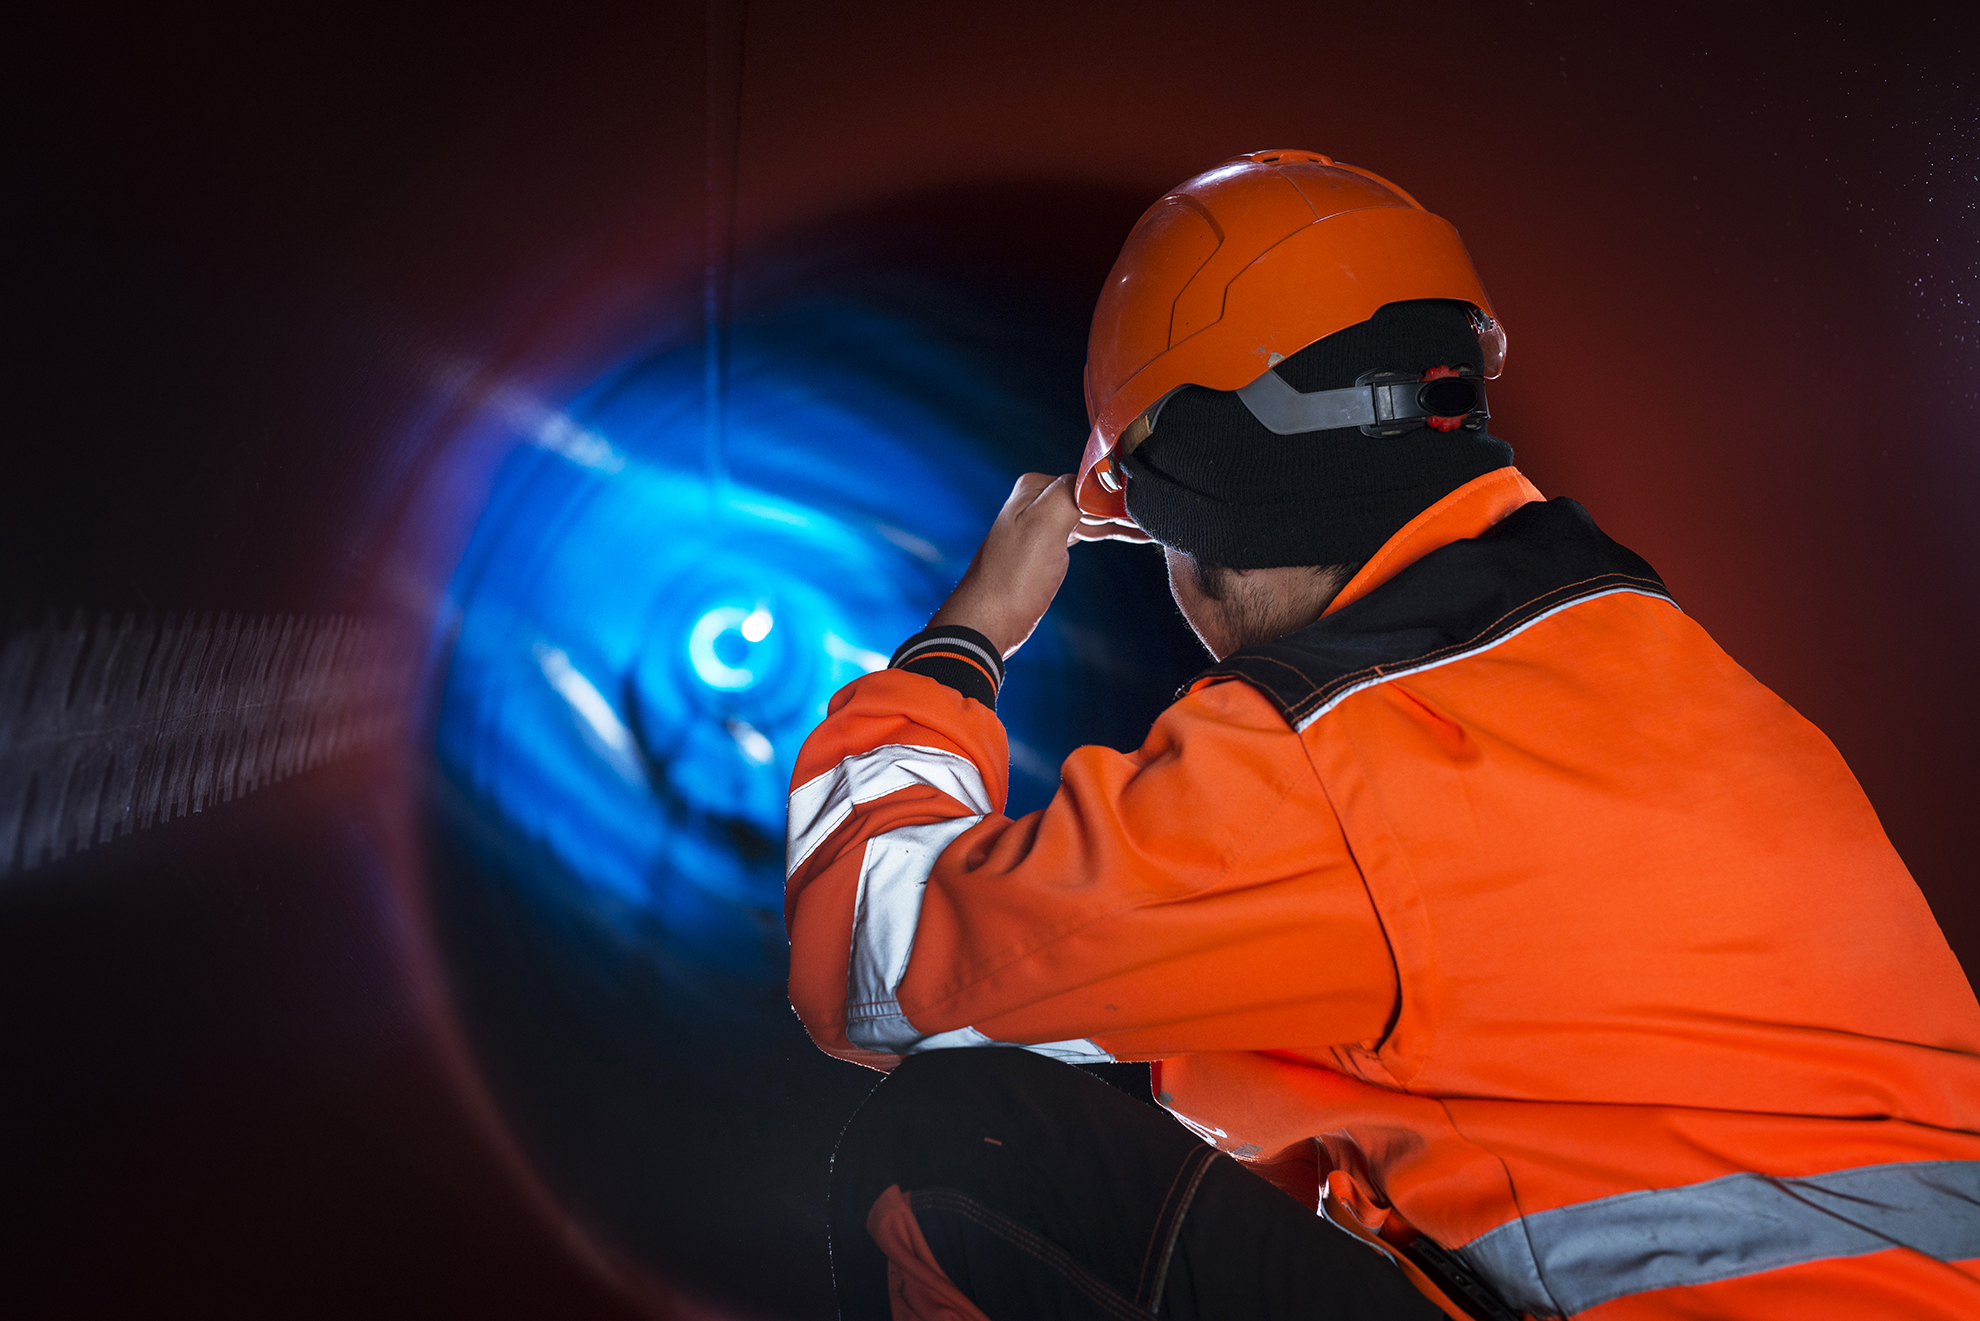 pipeline-construction-worker-reflective-protective-uniform-inspecting-pipe-tube-natural-gas-distribution